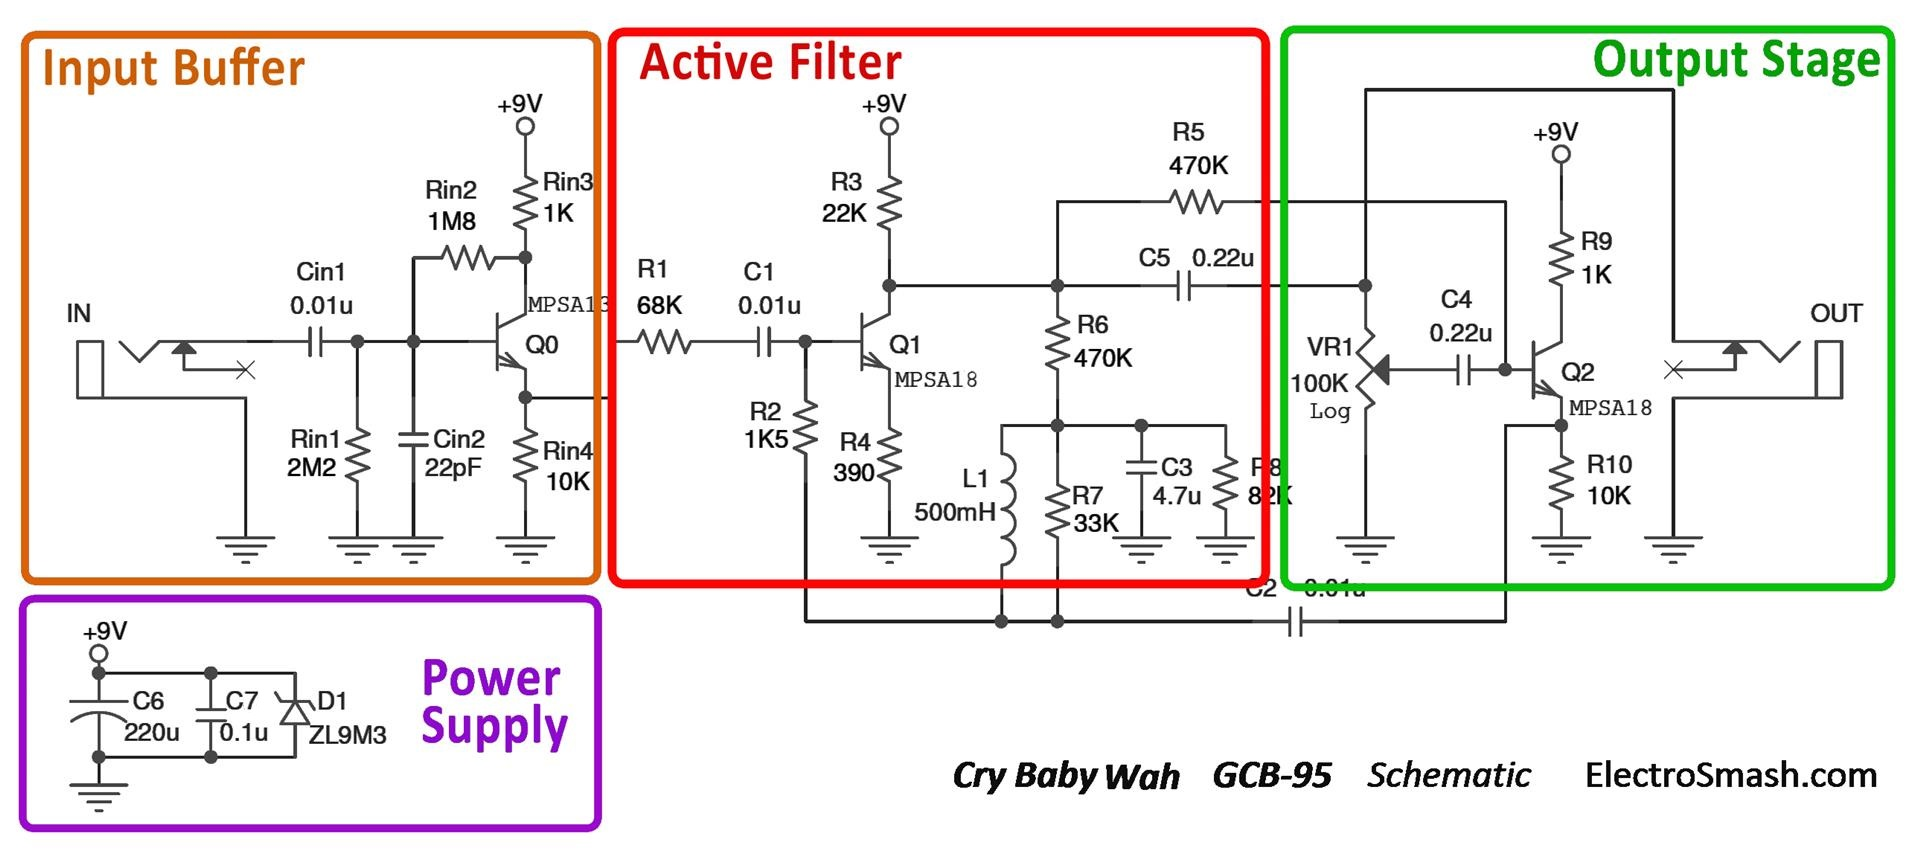 Electrosmash Dunlop Crybaby Gcb 95 Circuit Analysis 4pdt Wiring Diagram Cry Baby Wah Schematic Parts Small